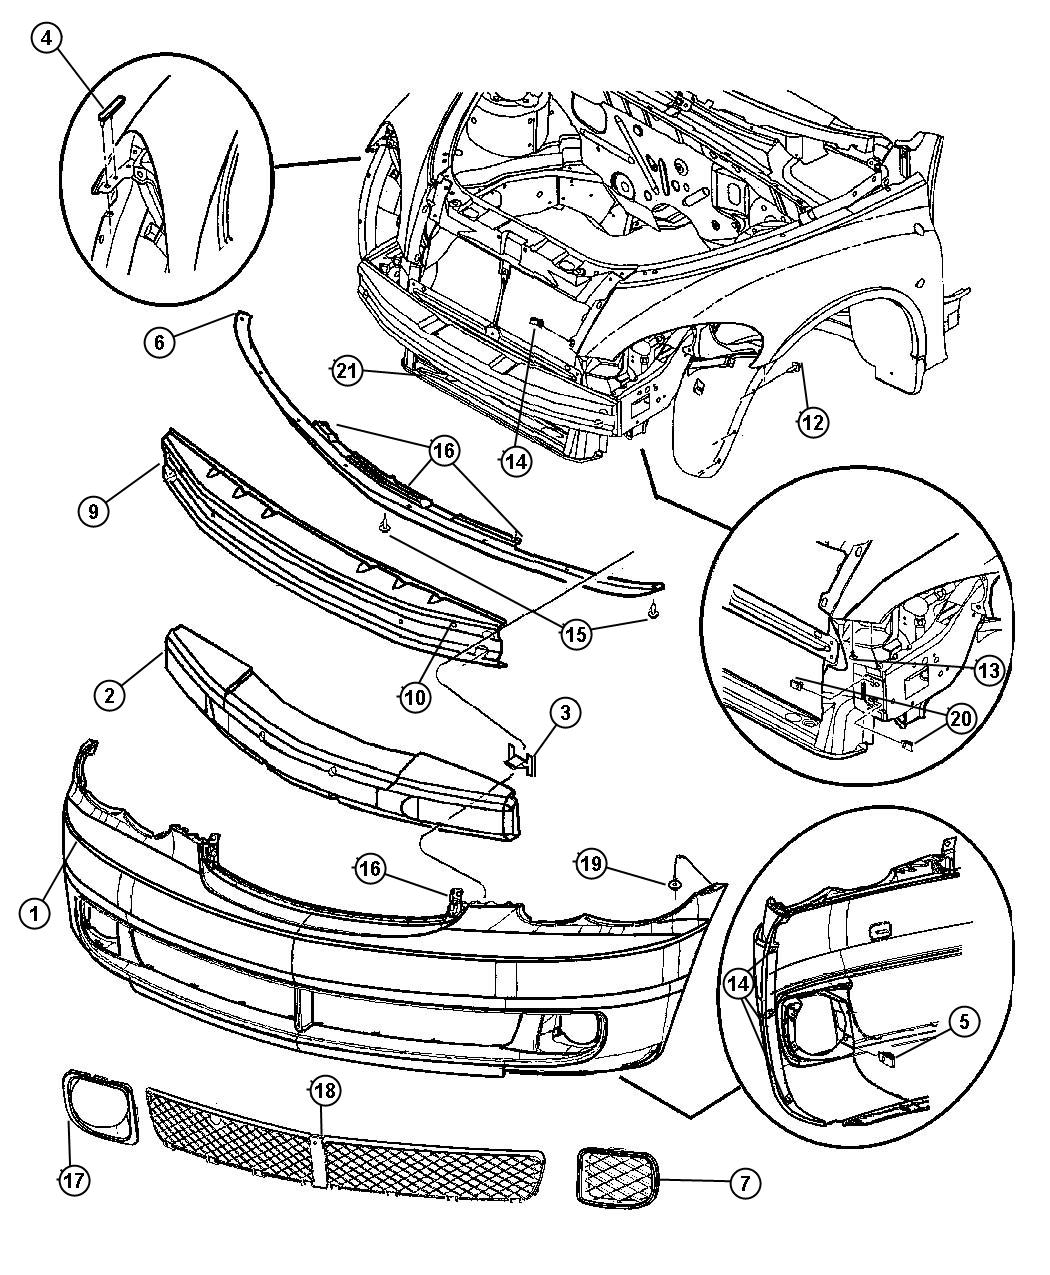 Discussion C21953 ds653640 in addition Evap Purge Solenoid Location together with Wiring Diagram For 1997 Dodge Ram 1500 together with 2005 Pt Cruiser Convertible Parts Wiring Diagrams furthermore Viewtopic. on 2004 chrysler town and country thermostat schematic